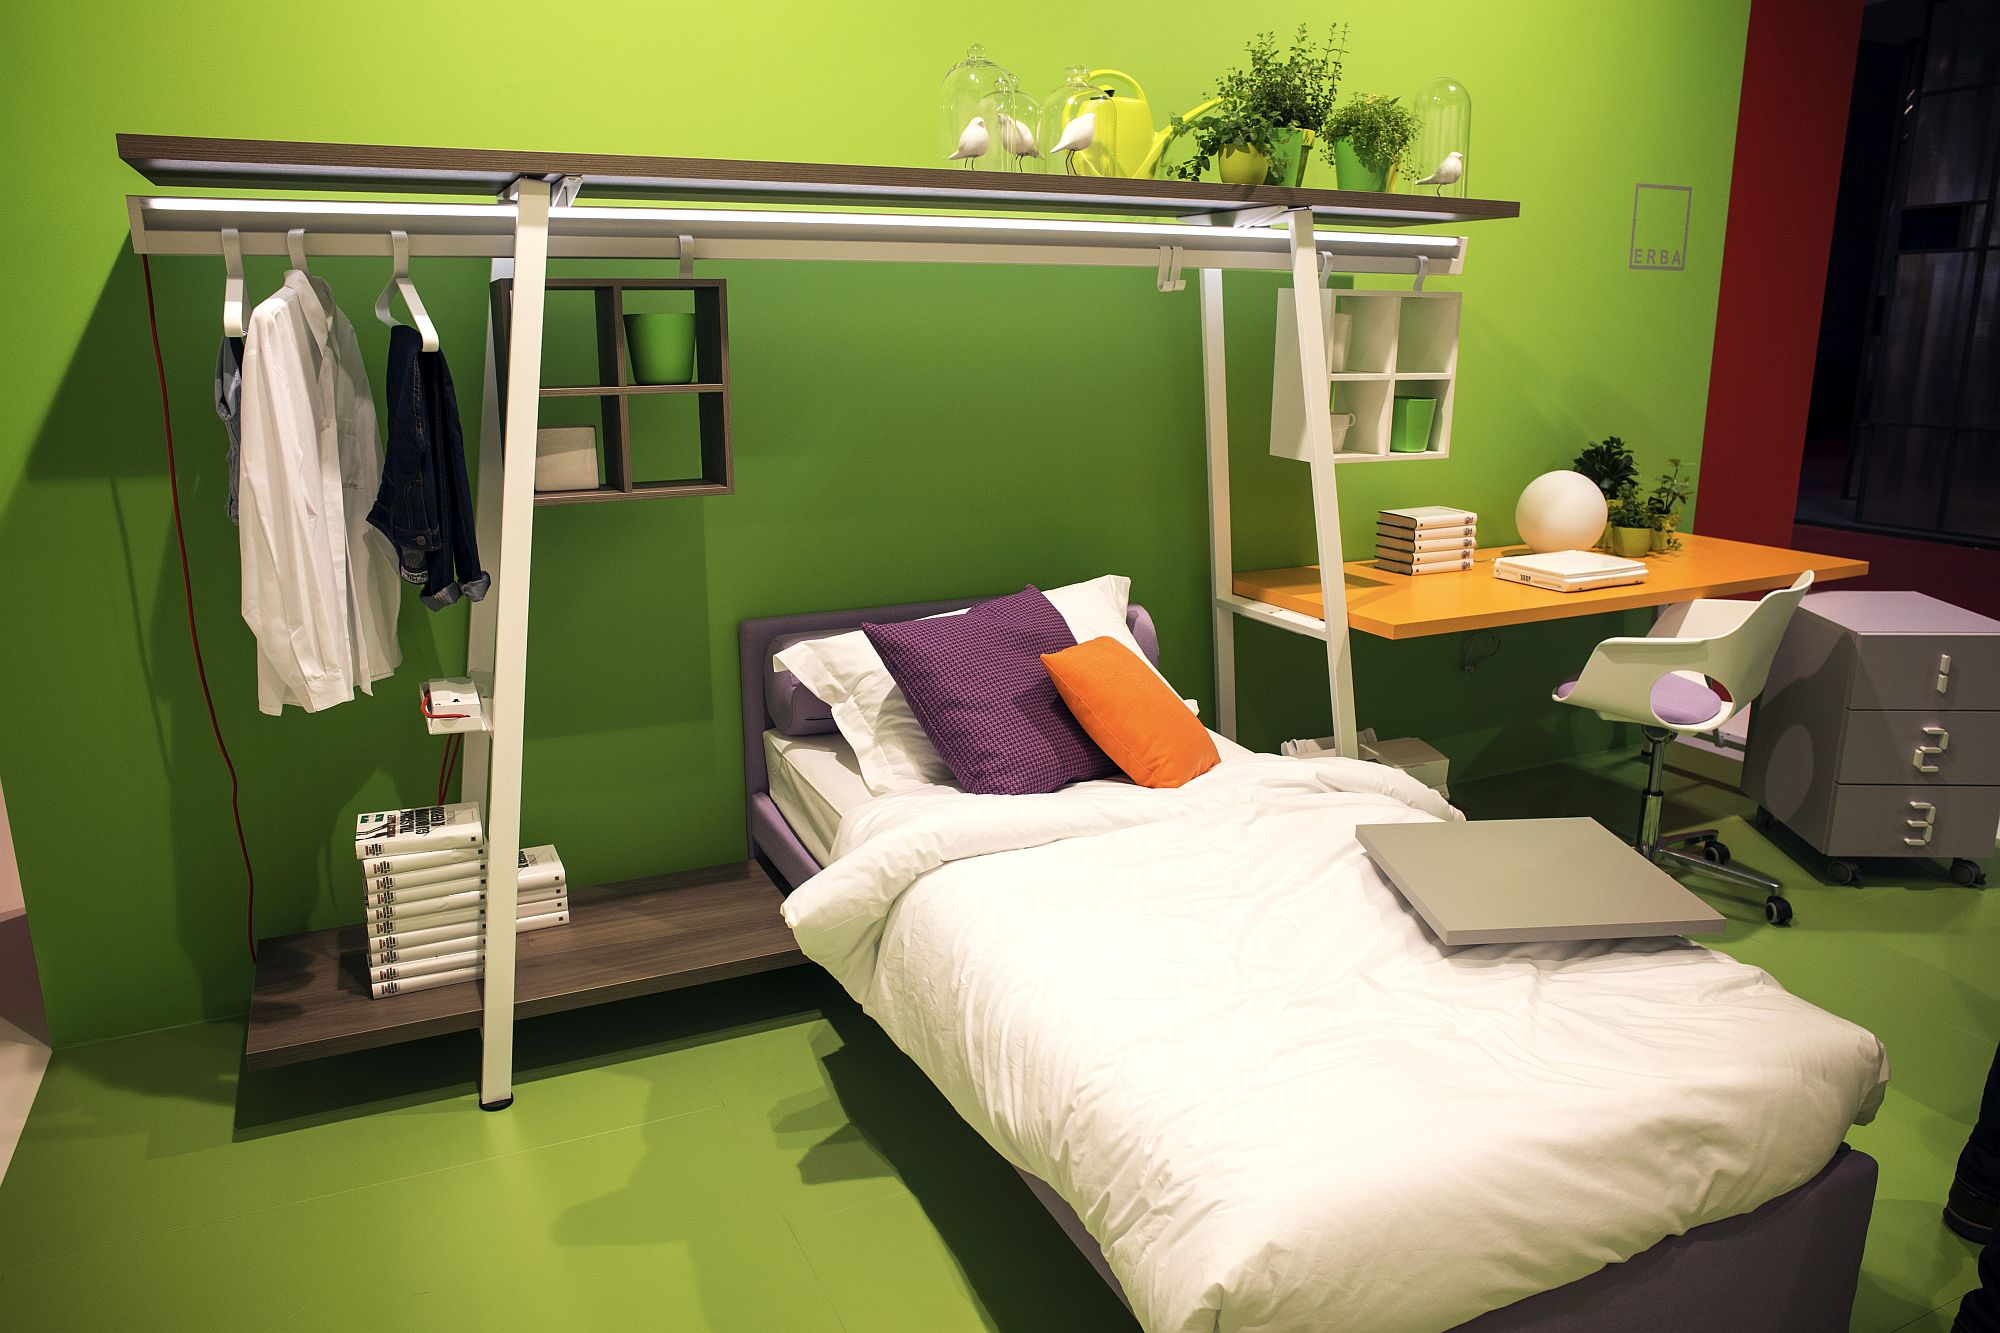 Smart Beds For Small Rooms An Organized Wardrobe 15 Space Savvy And Stylish Closet Ideas